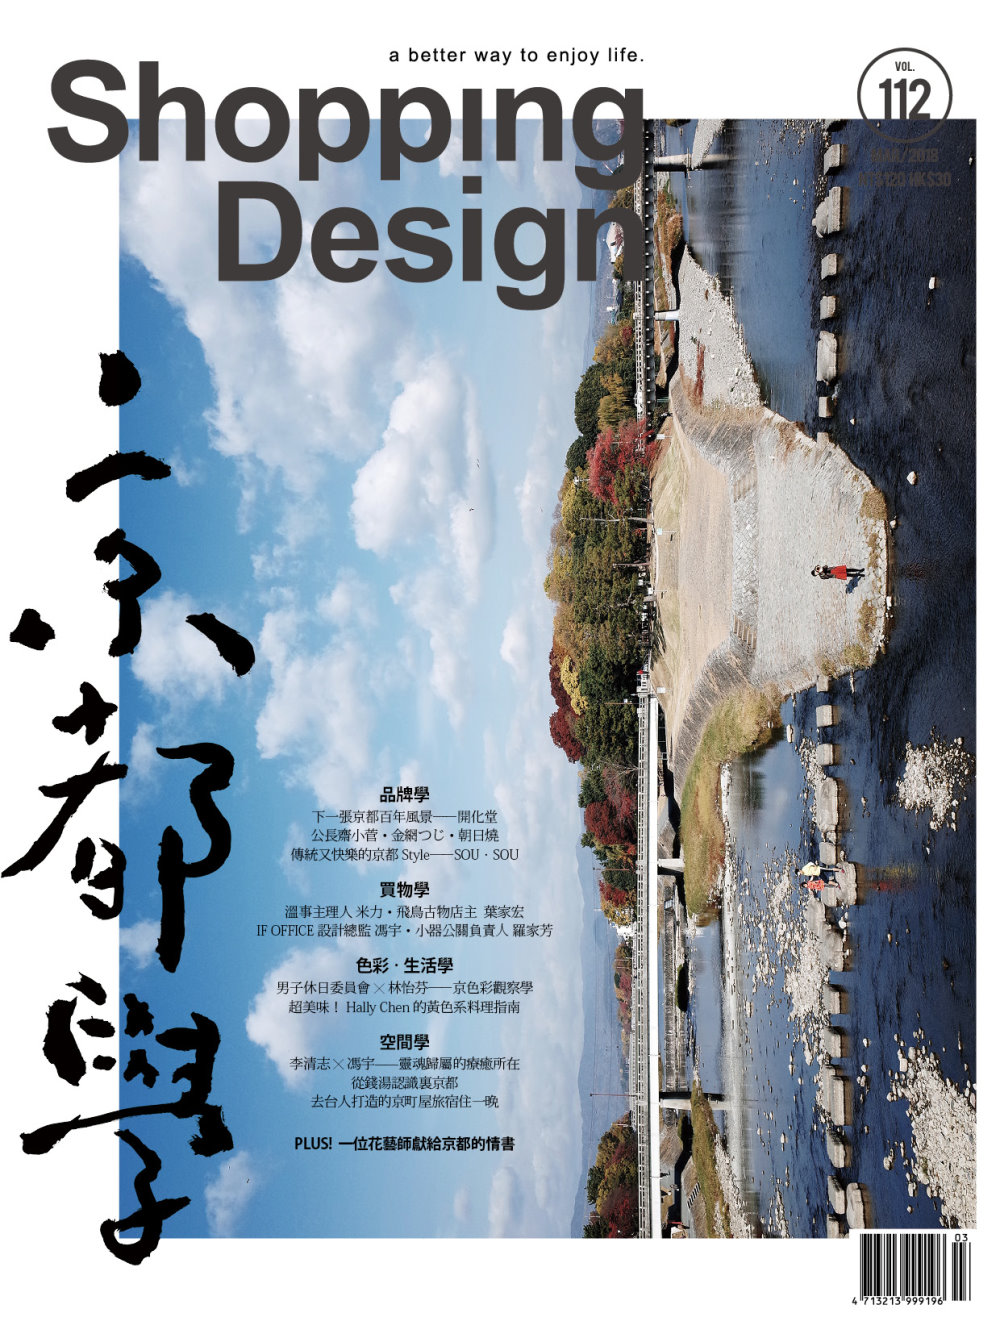 Shopping Design設計採買誌 3月號/2018 第112期